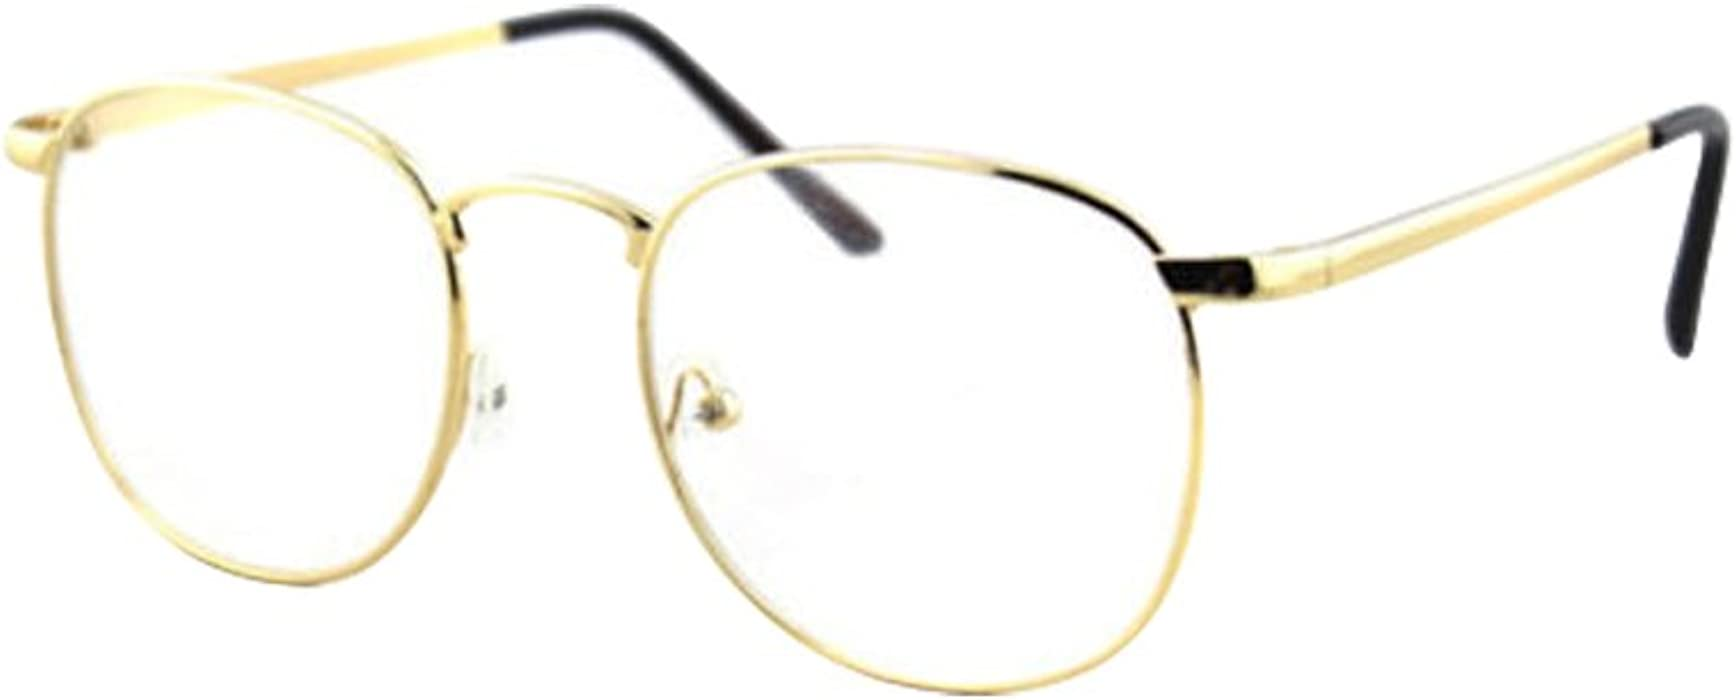 0542aa8a1476 Amazon.com  Gold Vintage Retro Metal Alloy Clear Lens Glasses Spectacles  Designer Nerd Eyeglass  Clothing